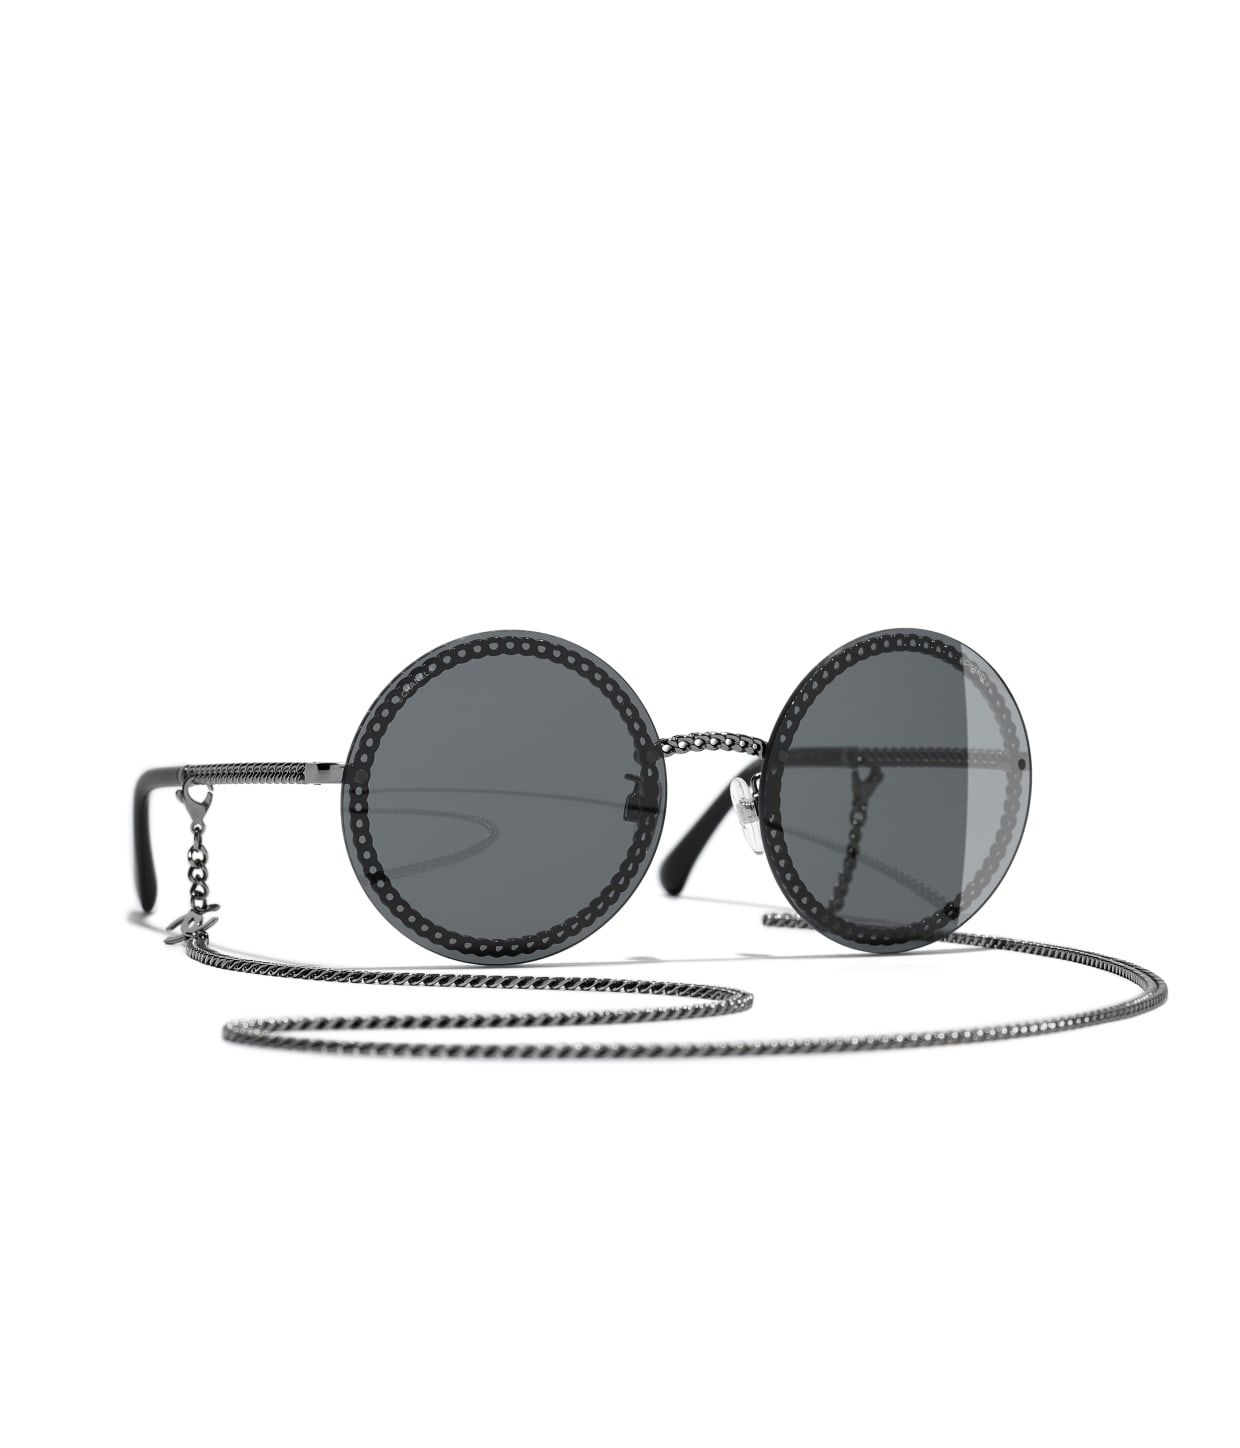 5b093c38e Spring 2019 Eyewear Collection | CHANEL | 2019 in 2019 | Chanel ...